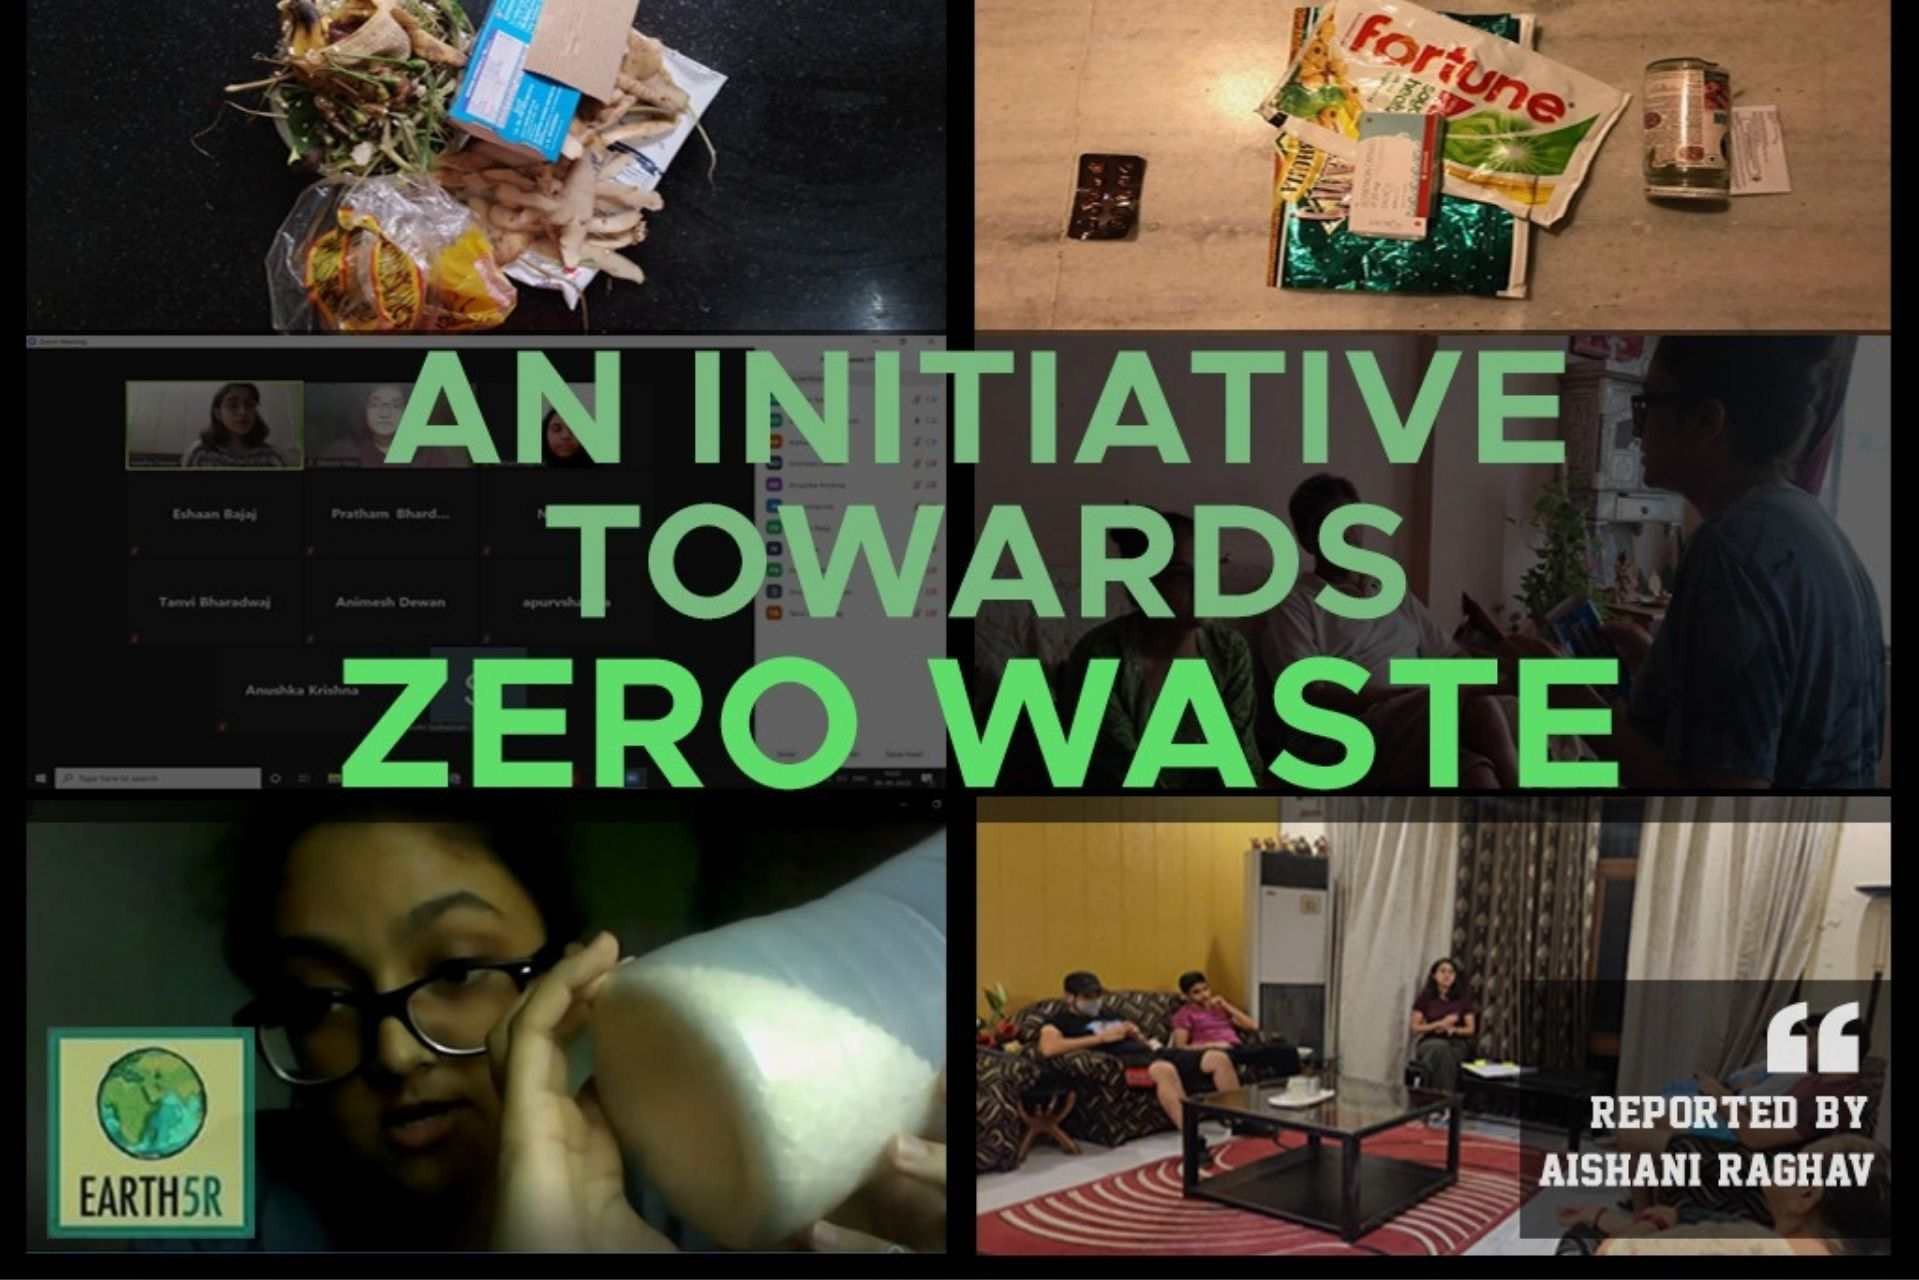 Mumbai-India-Environmental-NGO-Earth5r-Circular-Economy-waste-segregation-initiative